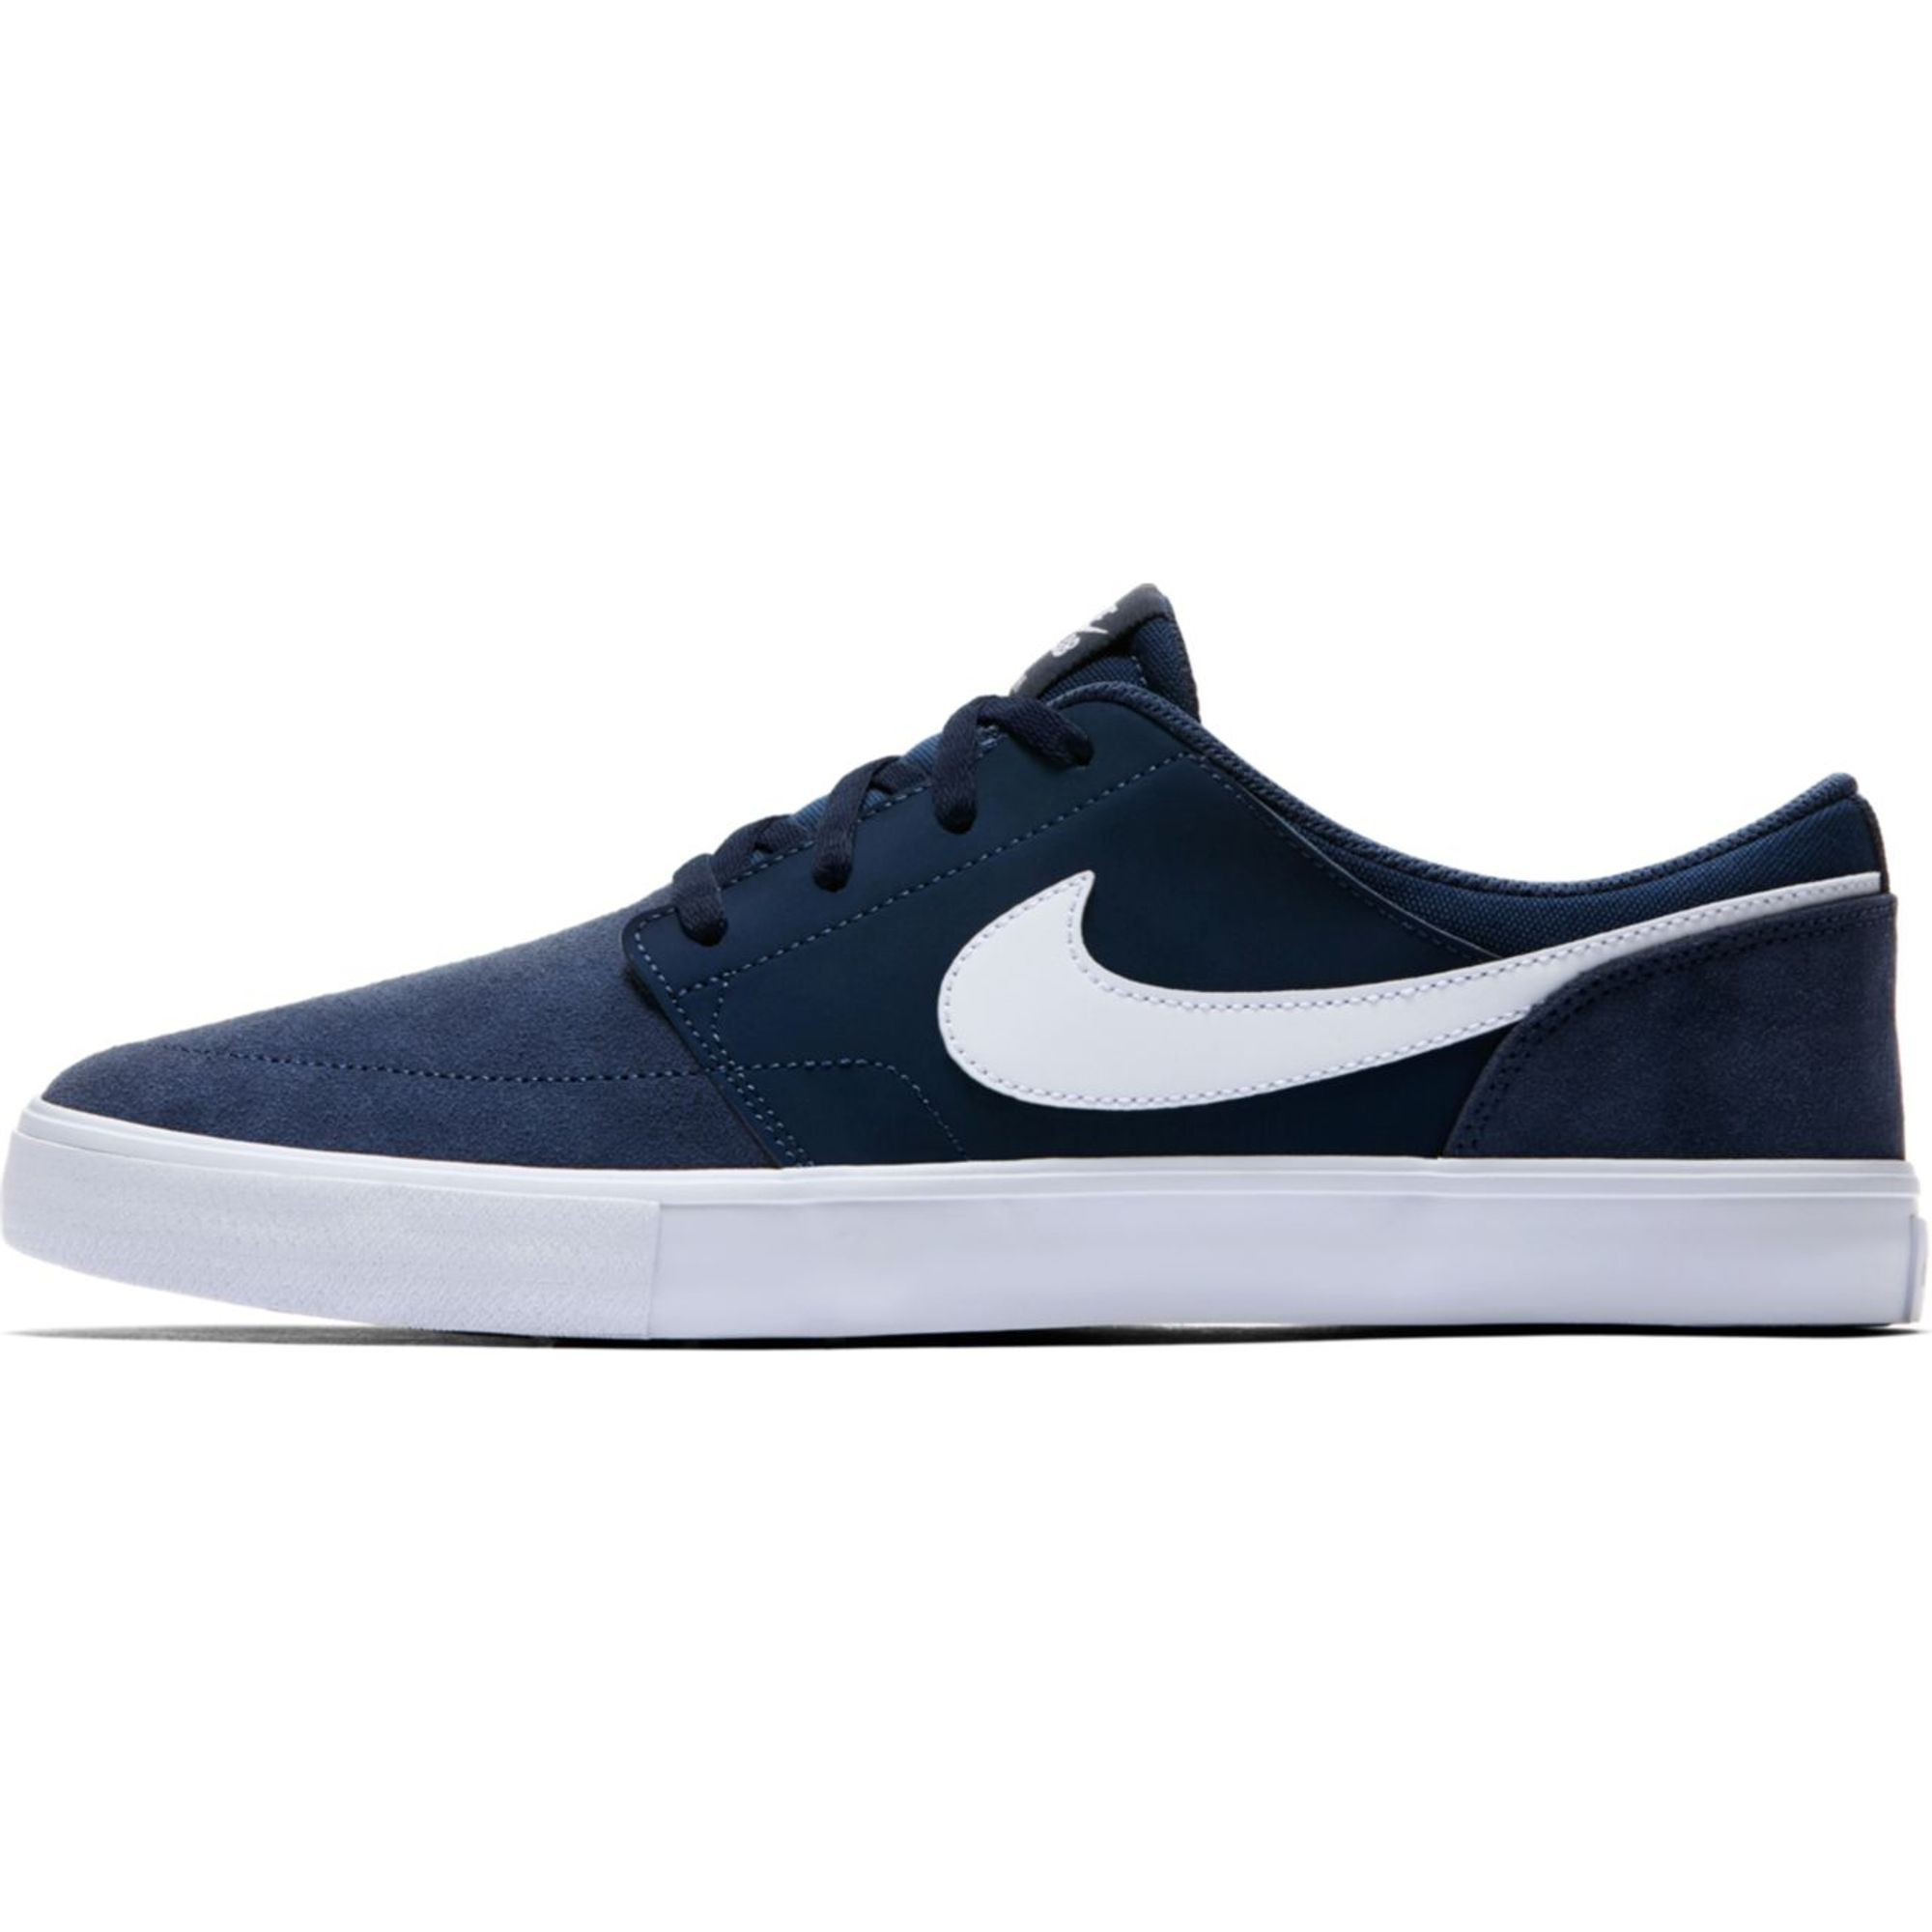 Nike Nike Sb Portmore Ii Solar - midnight navy/white-black